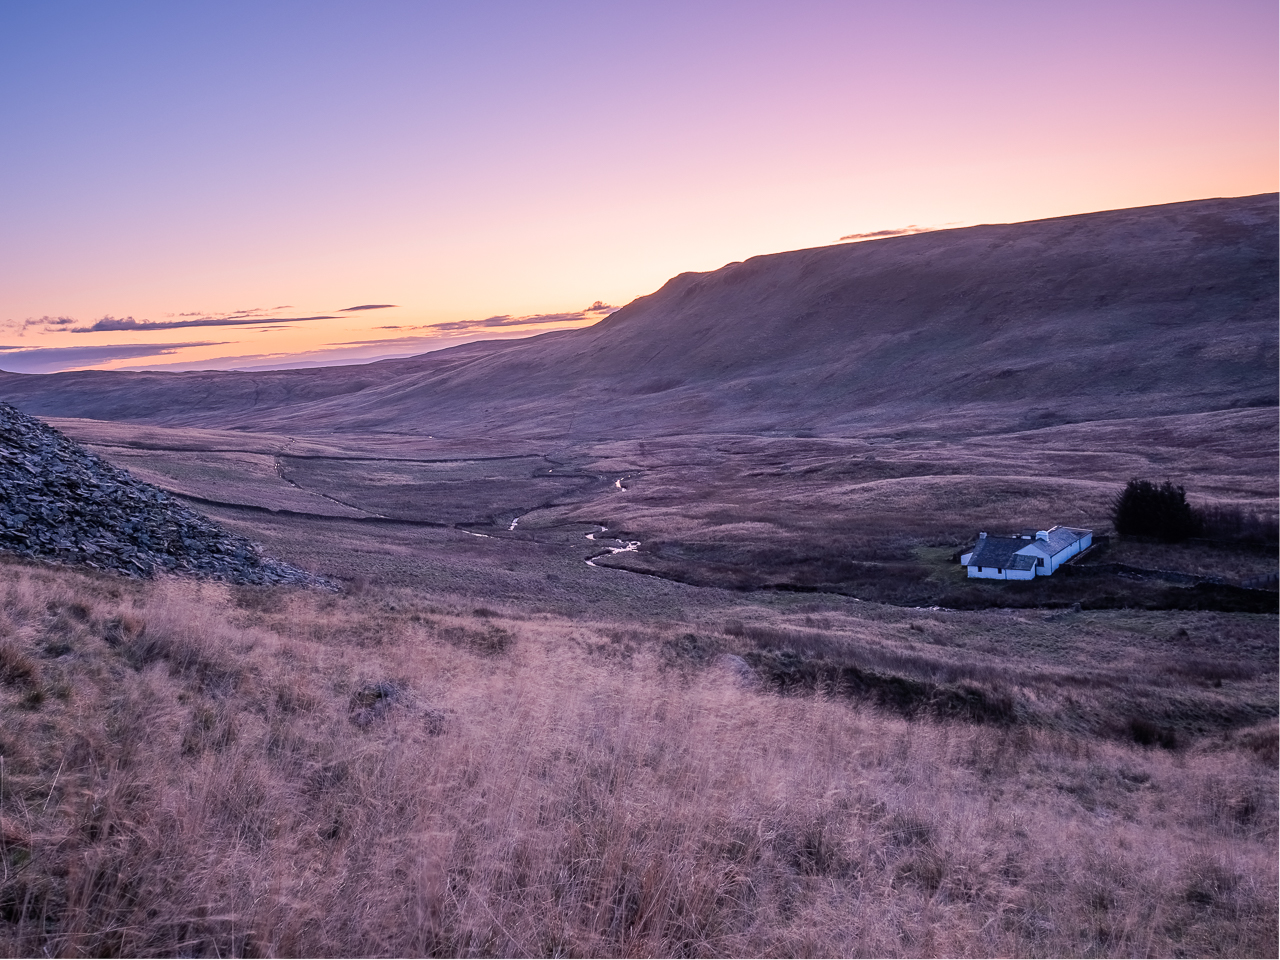 Mosedale Cottage, a bothyt in the Lake District, Cumbria, England, seen at dawn from a nearby quarry.